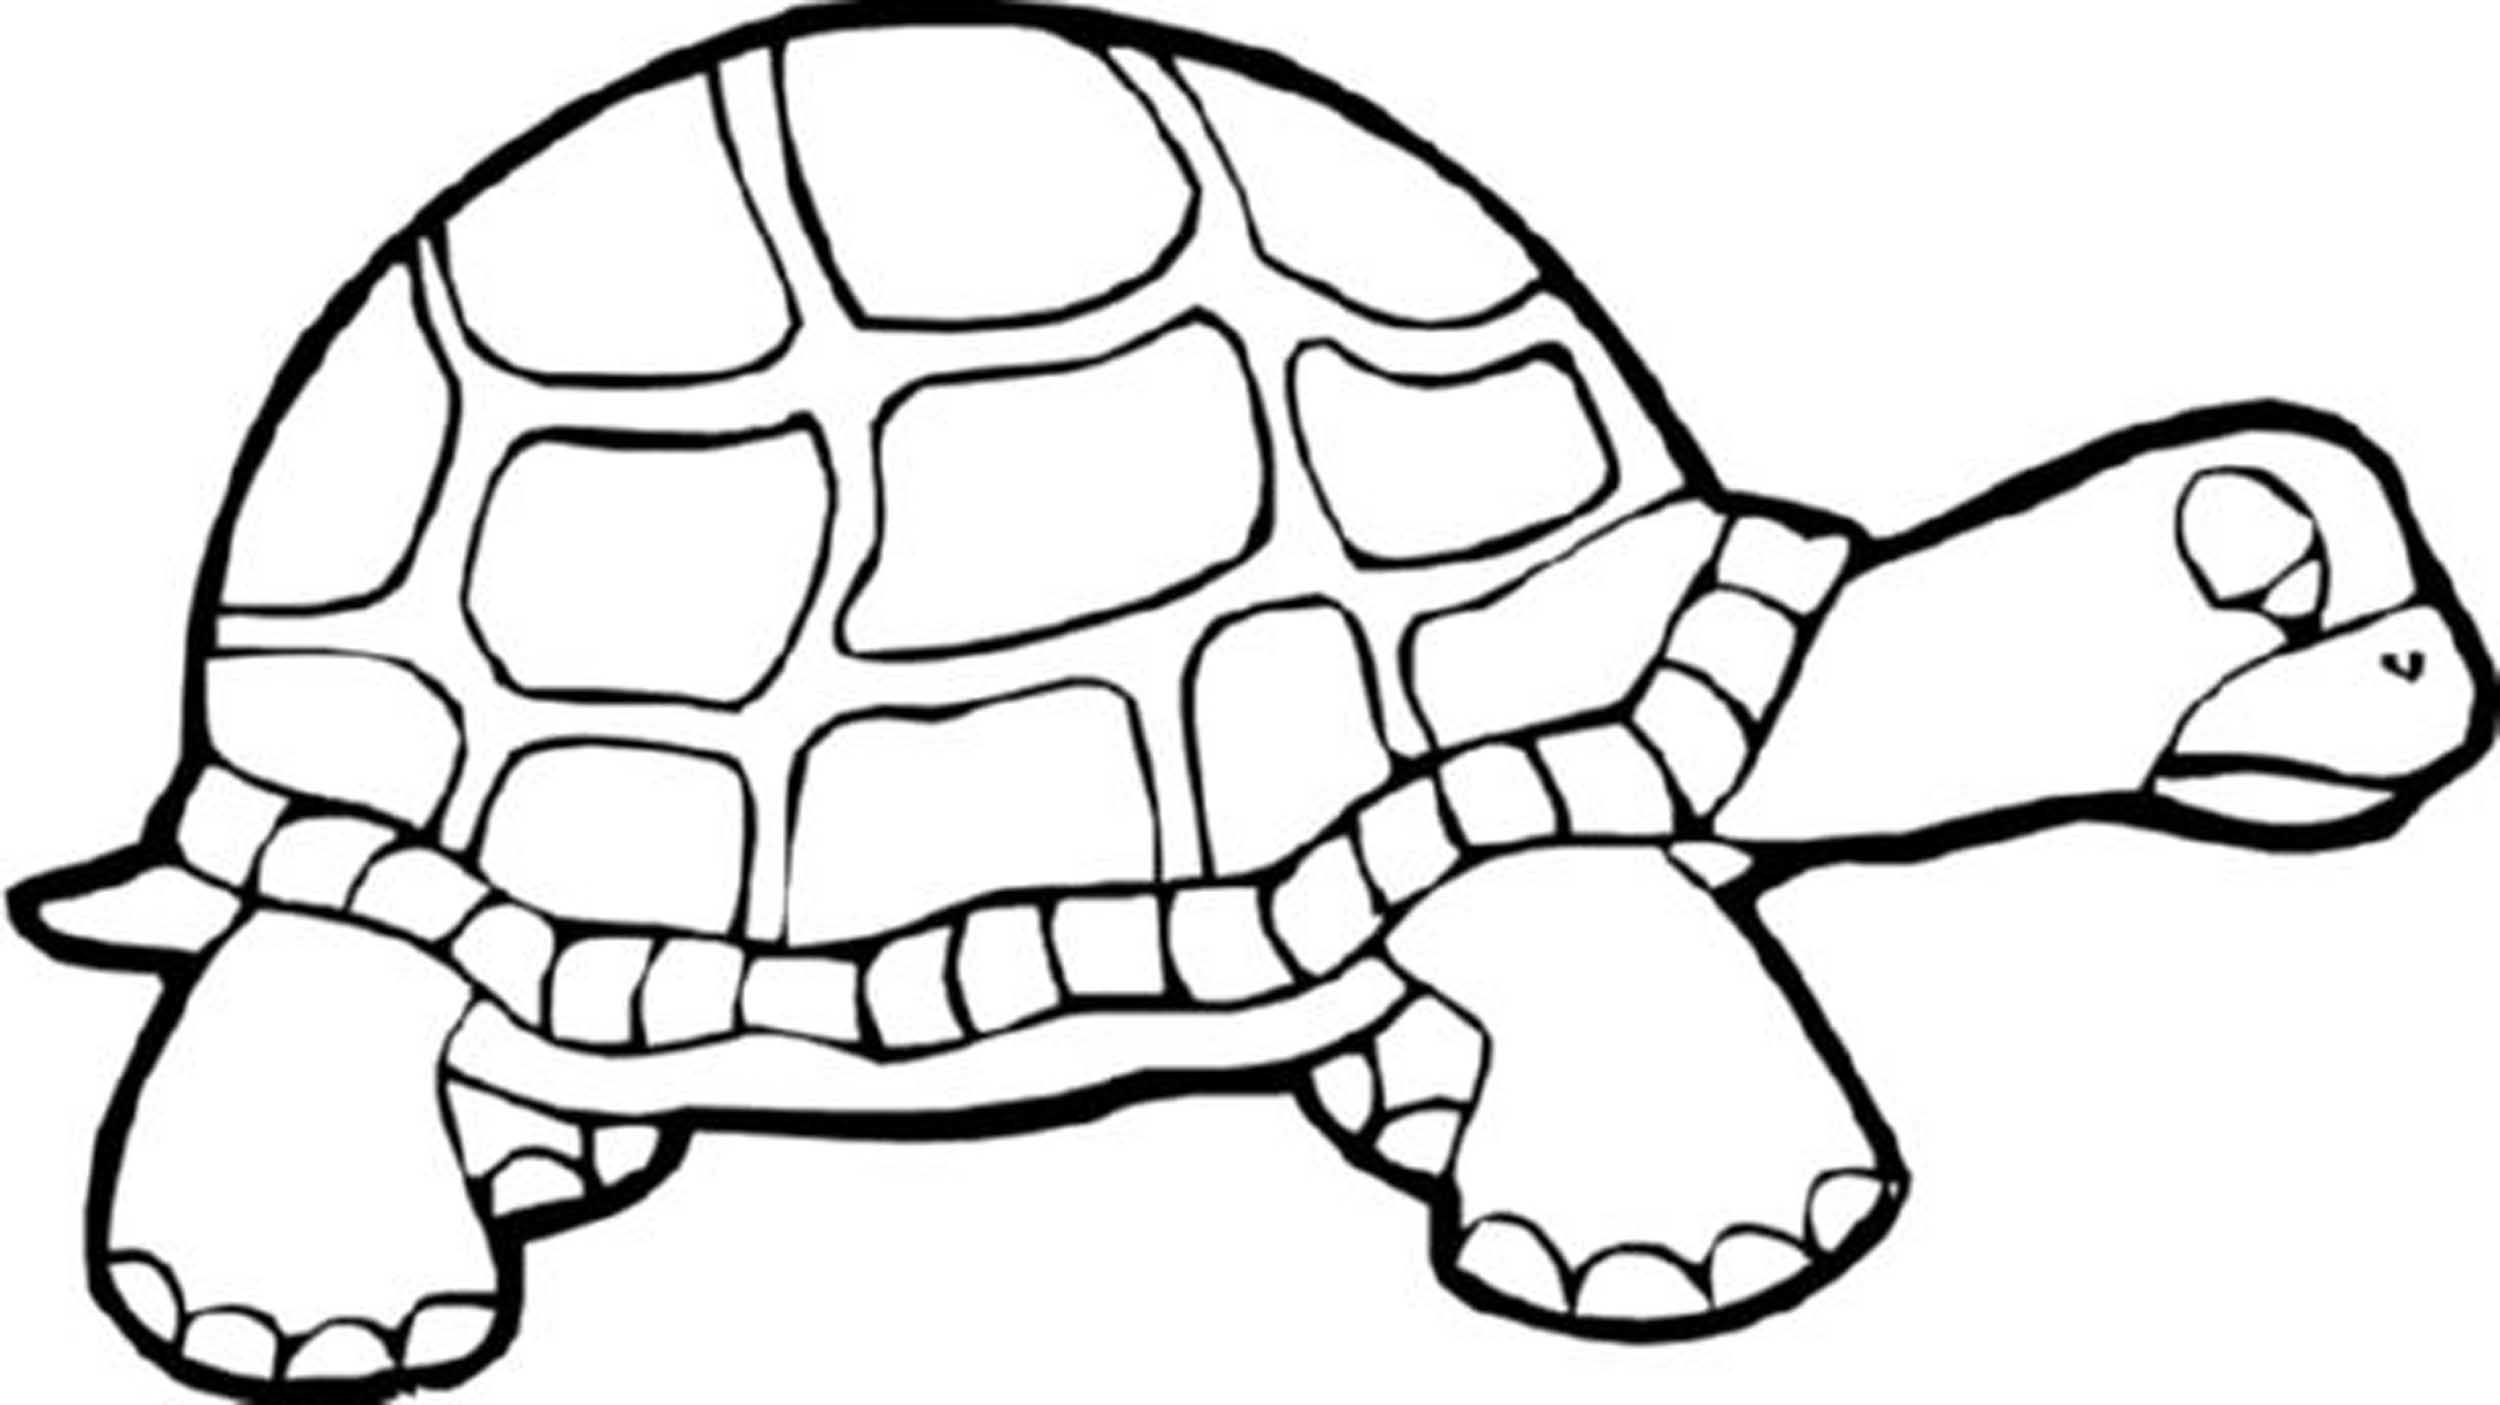 turtle colouring sheets coloring pages turtles free printable coloring pages colouring sheets turtle